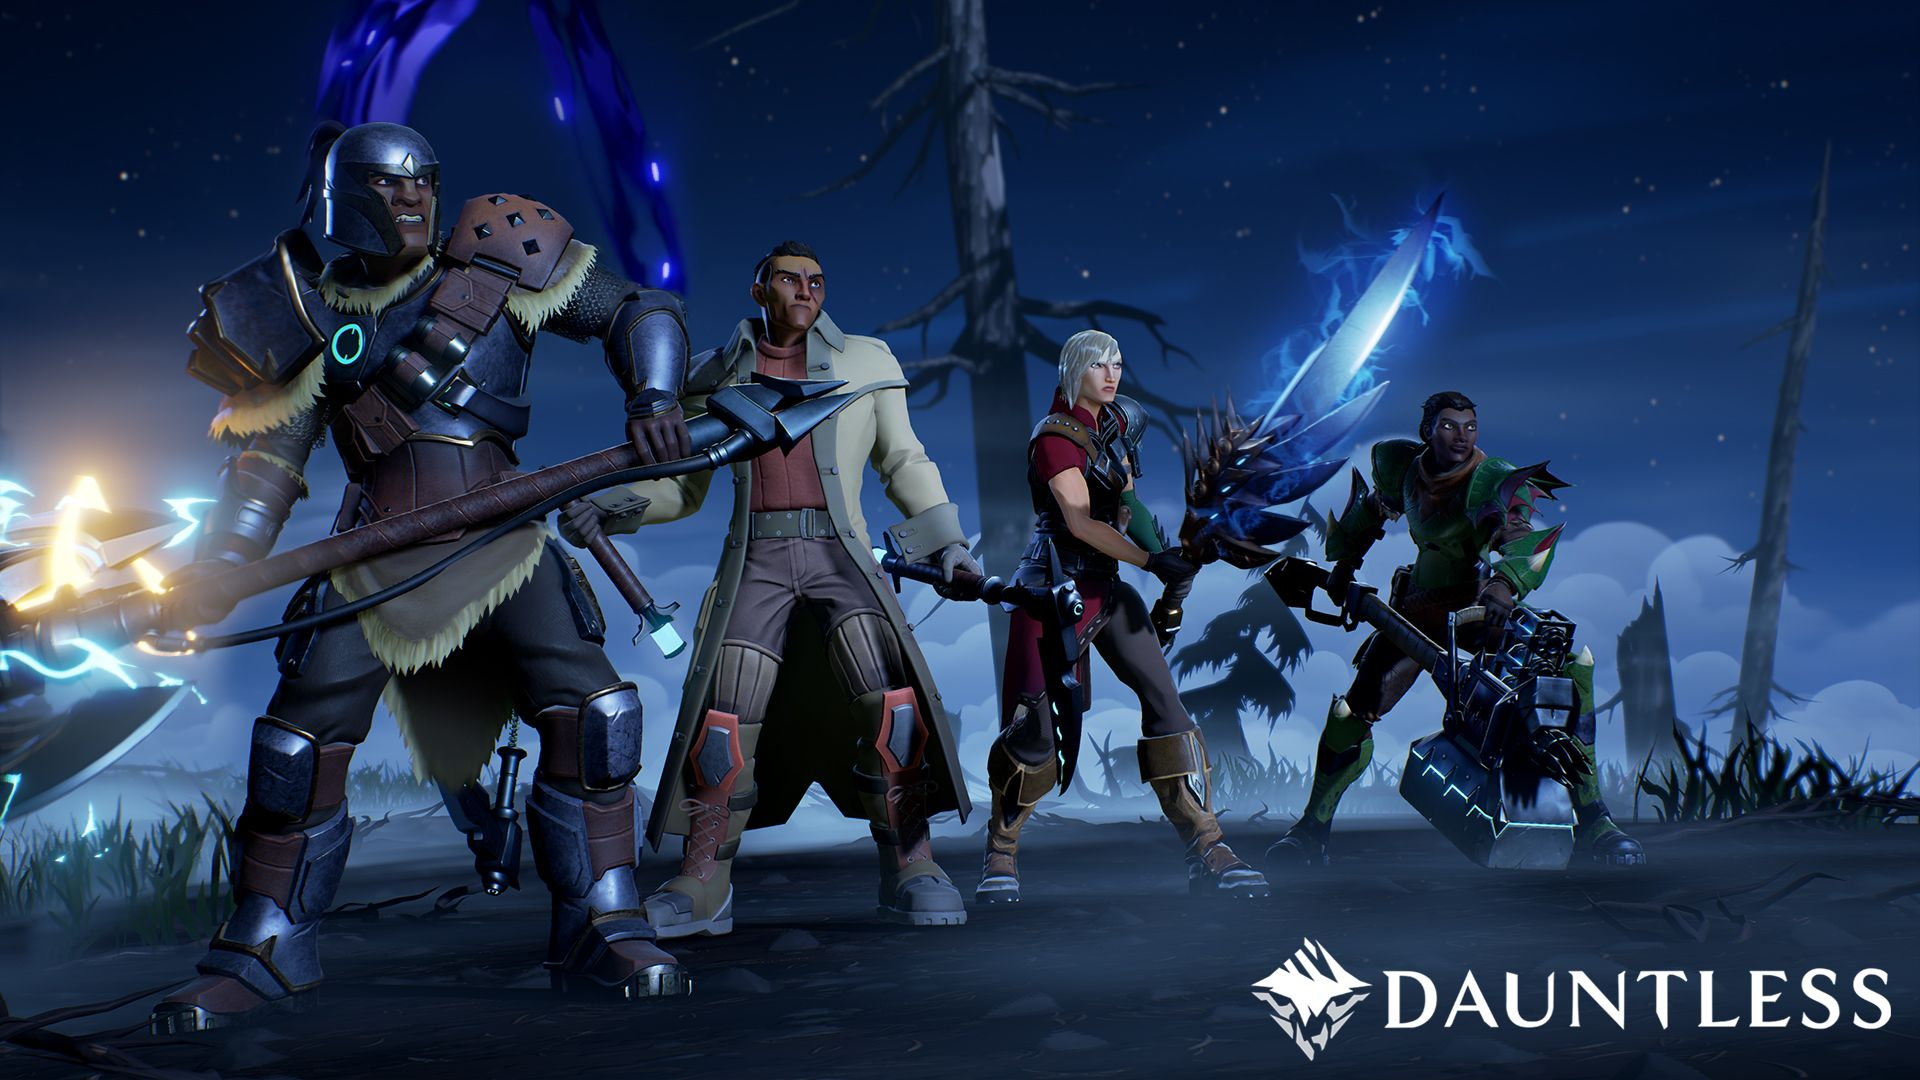 Dauntless Slayers